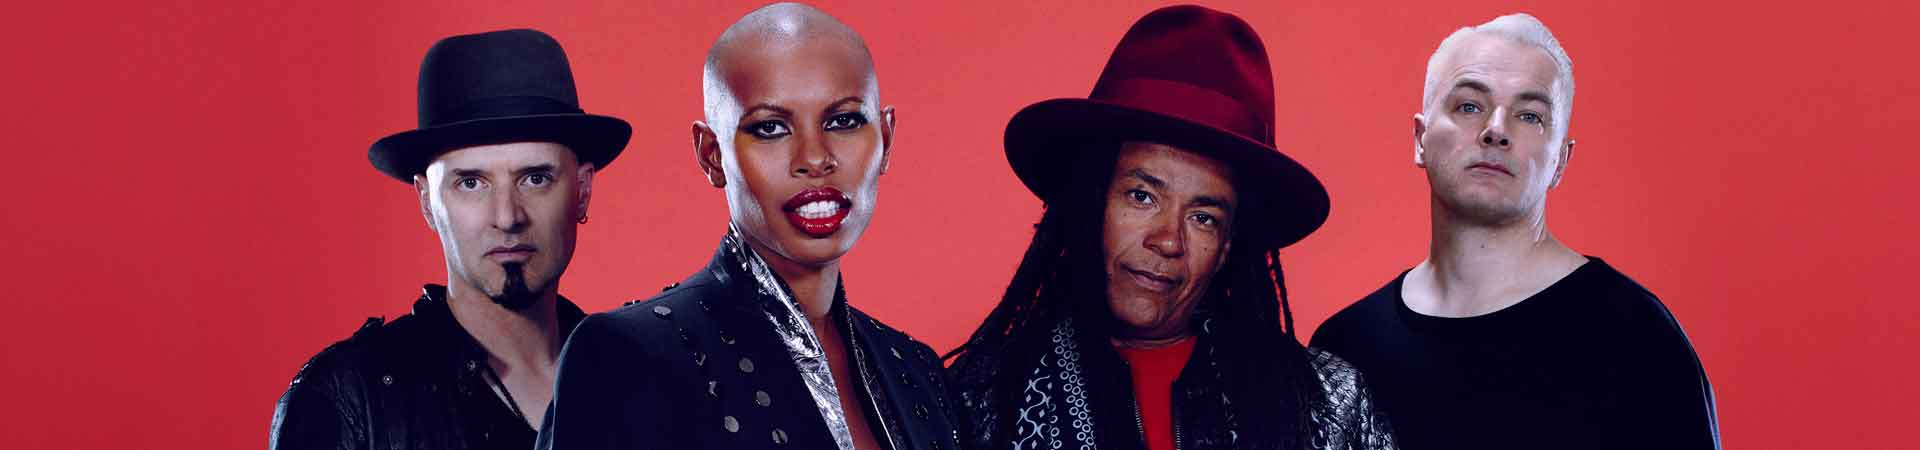 Skunk Anansie: Anarchytechture